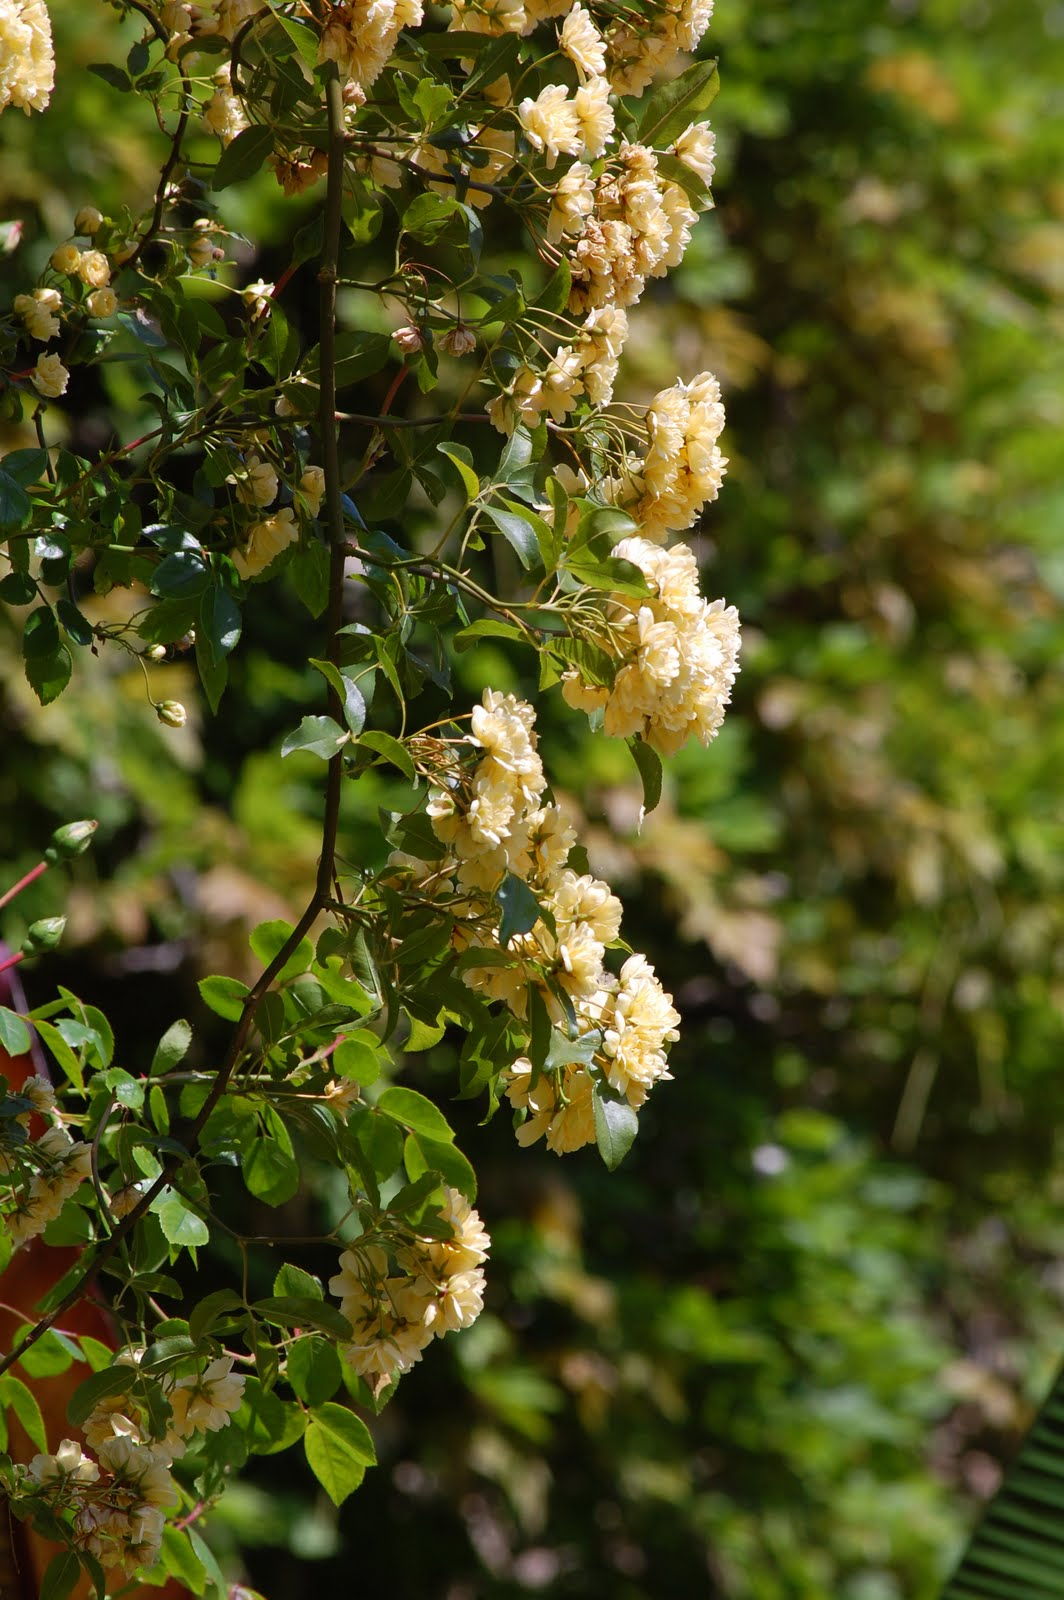 In The Blog For 24th February Rosa Banksiae Lutea I Mentioned That Unlike Many Other Roses This Rose Was Pruned After Flowering And Pruning